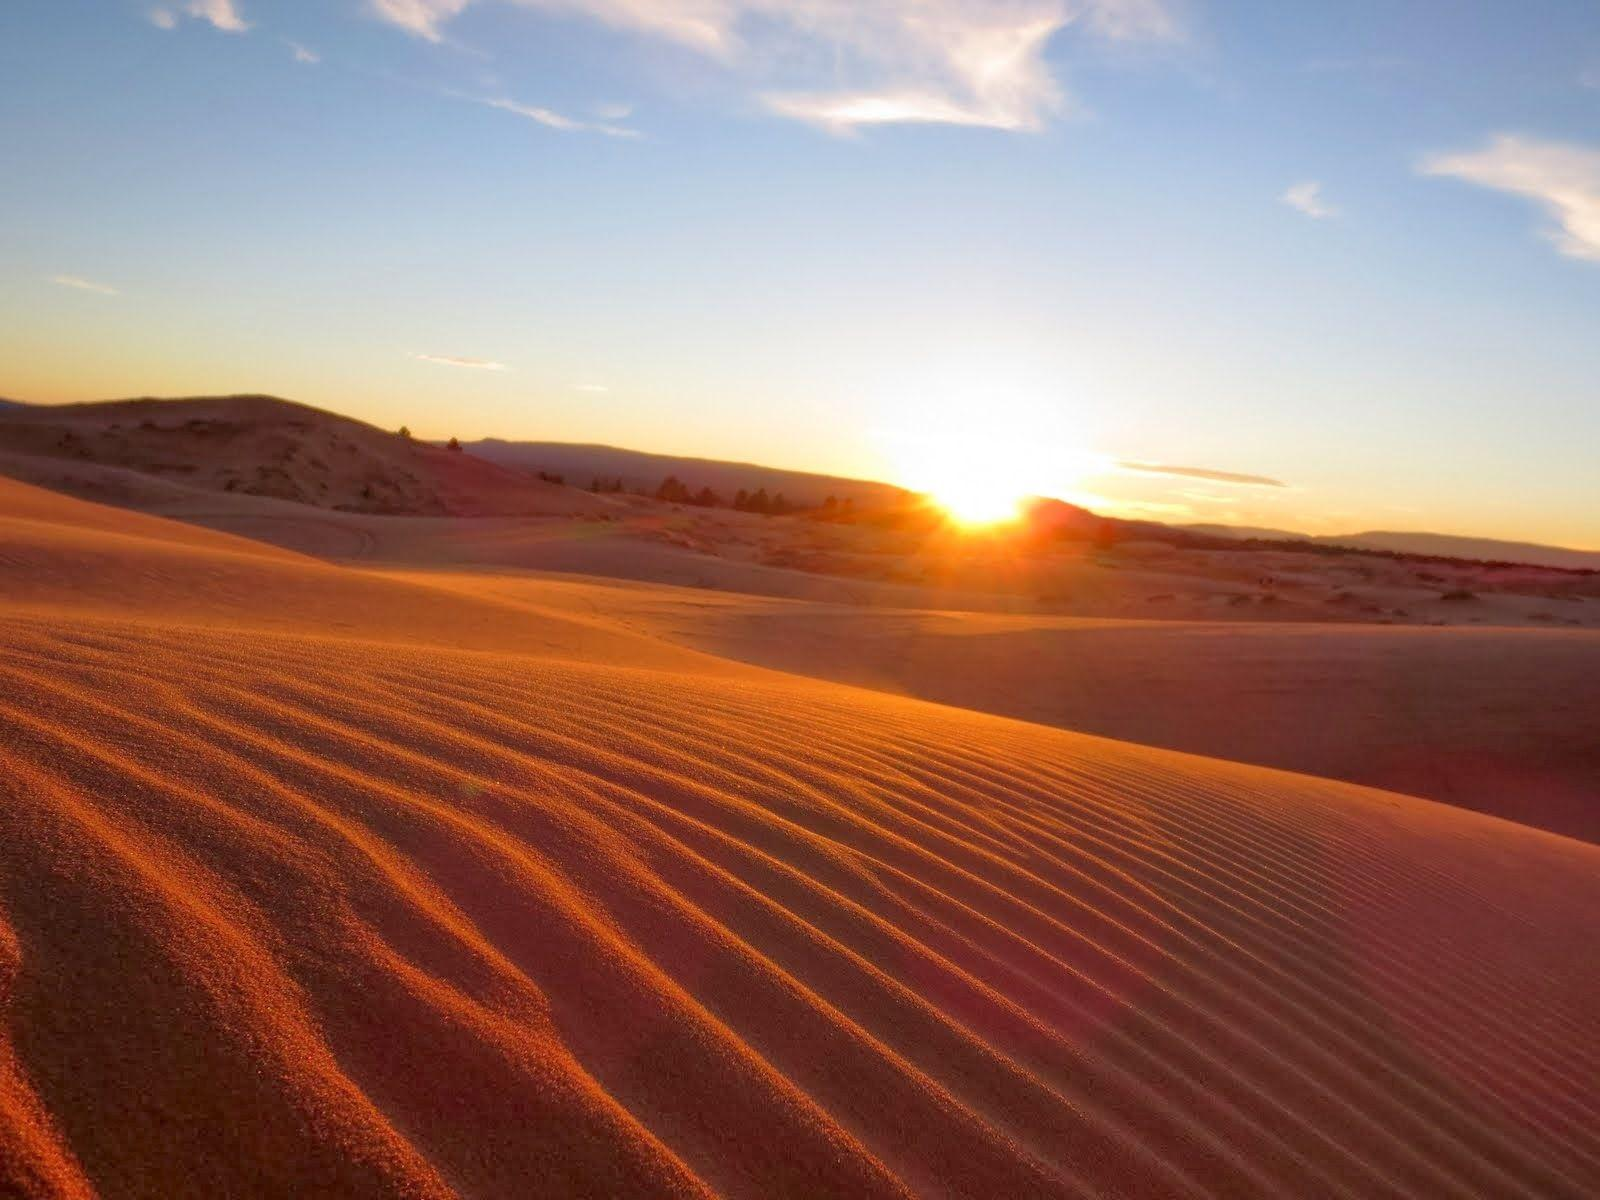 Sand Dunes Sunset Pictures « Desktop Backgrounds Wallpapers HD